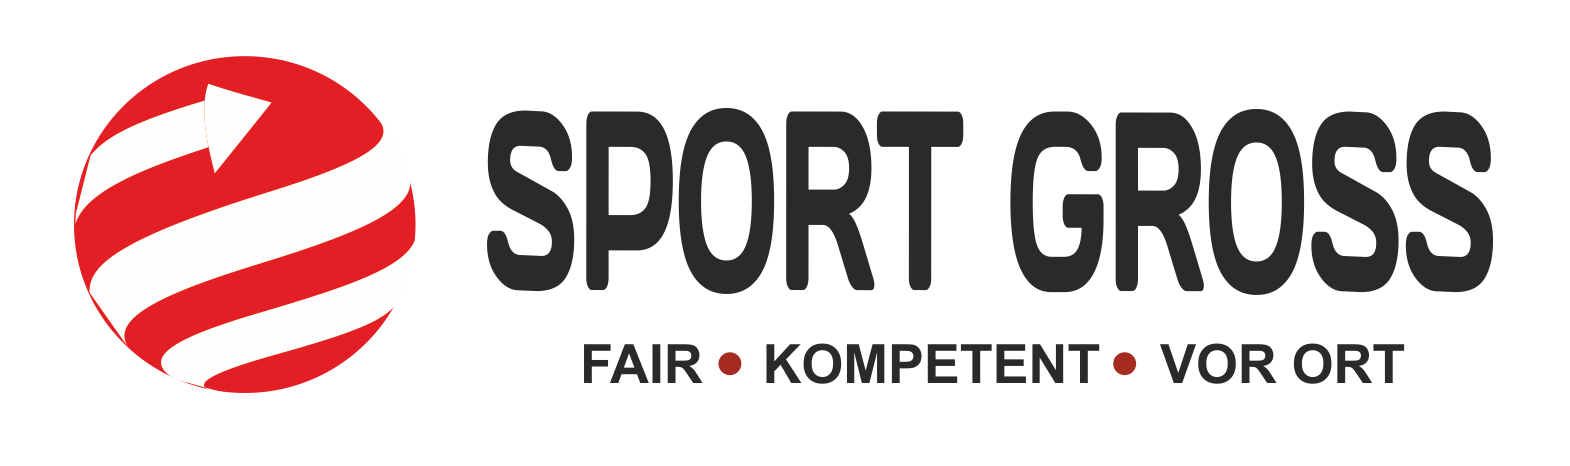 Sportshop Gross Logo2